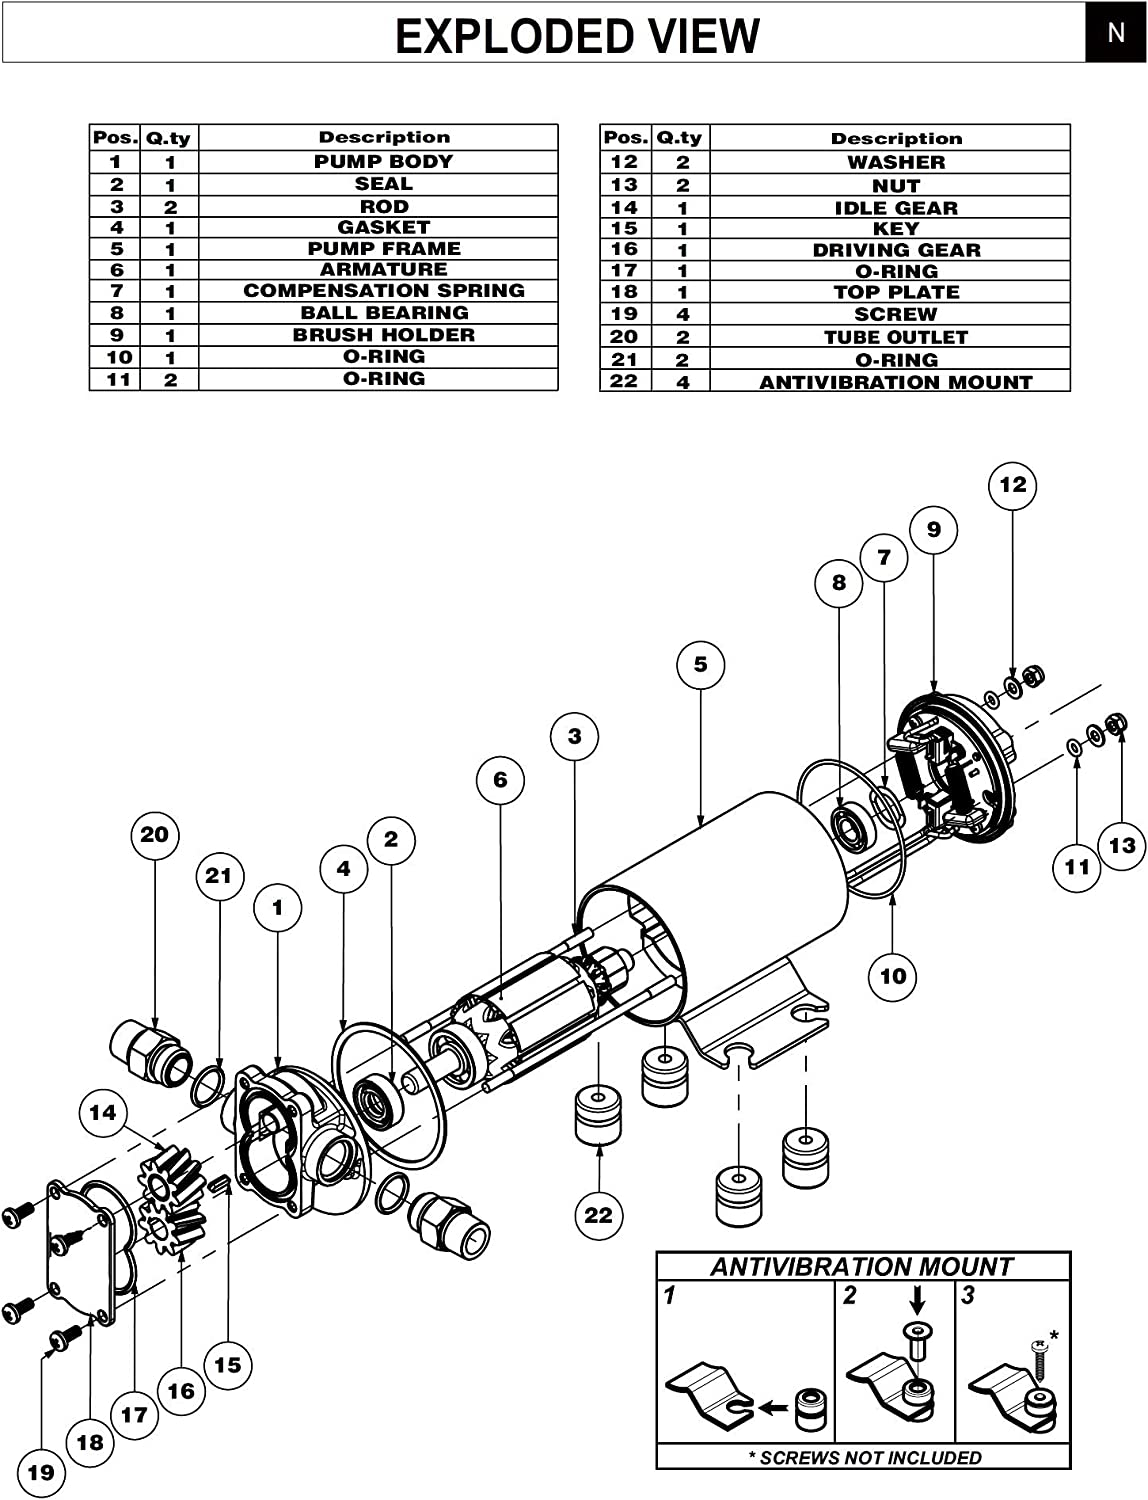 EngineGear 2.1 GPM Gear Pump 24V with Larger 7.5A Motor for Motor Oil or Diesel Fuel Transfer